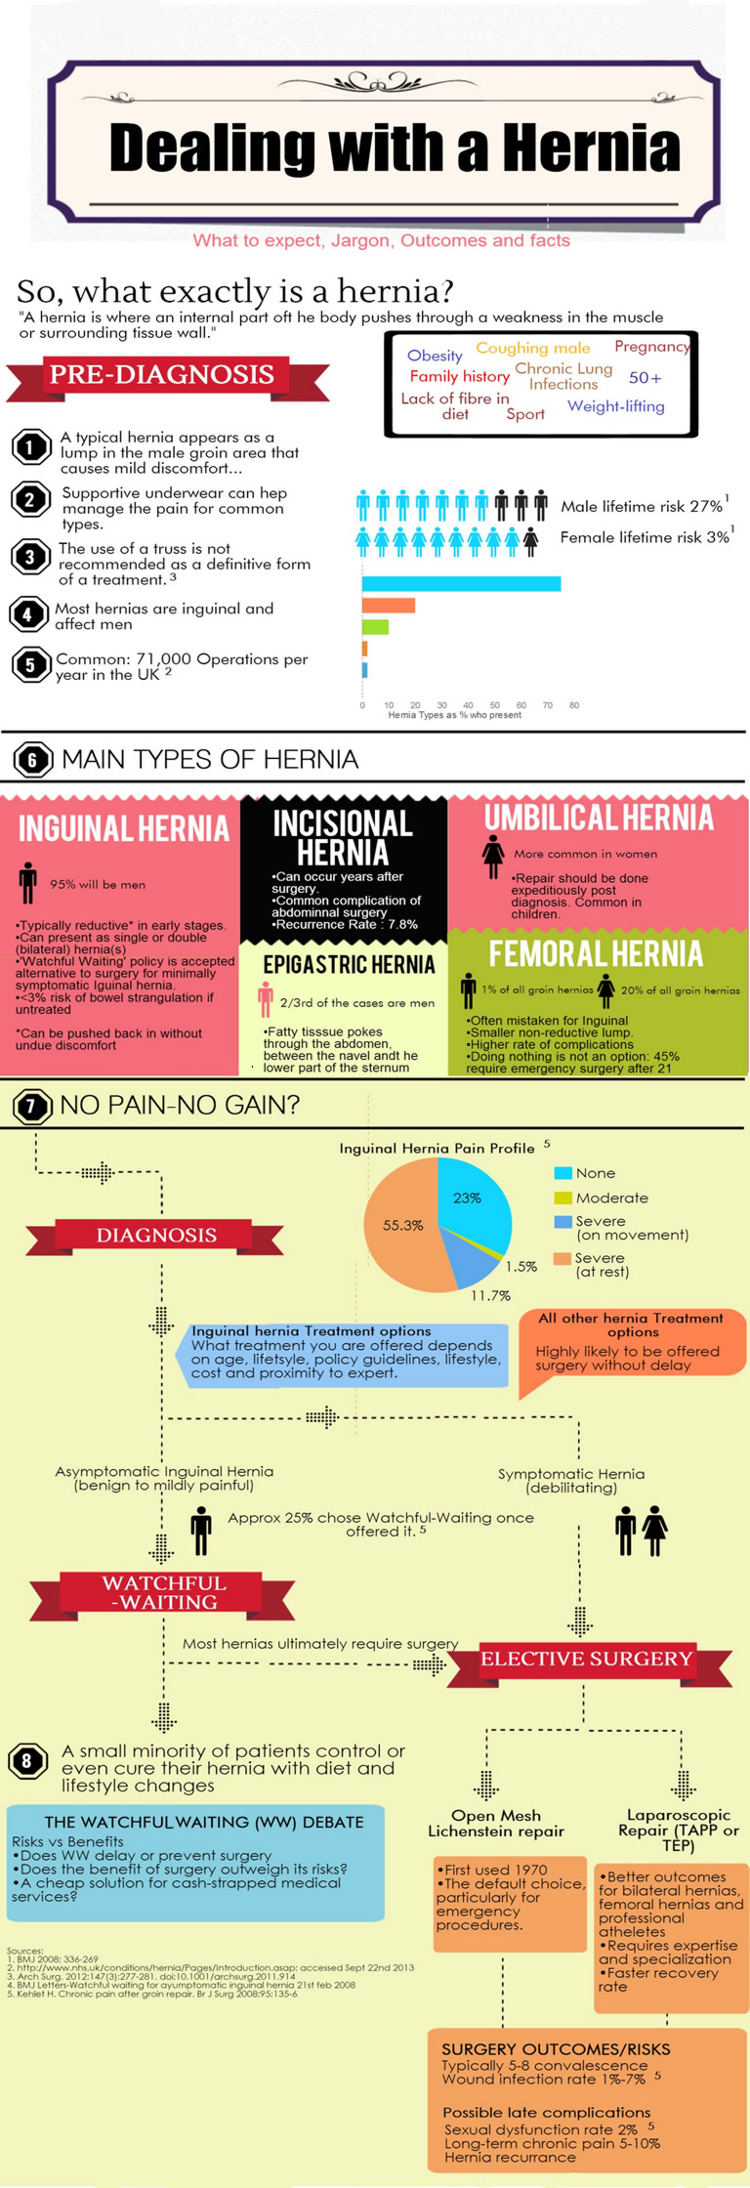 Dealing With A Hernia